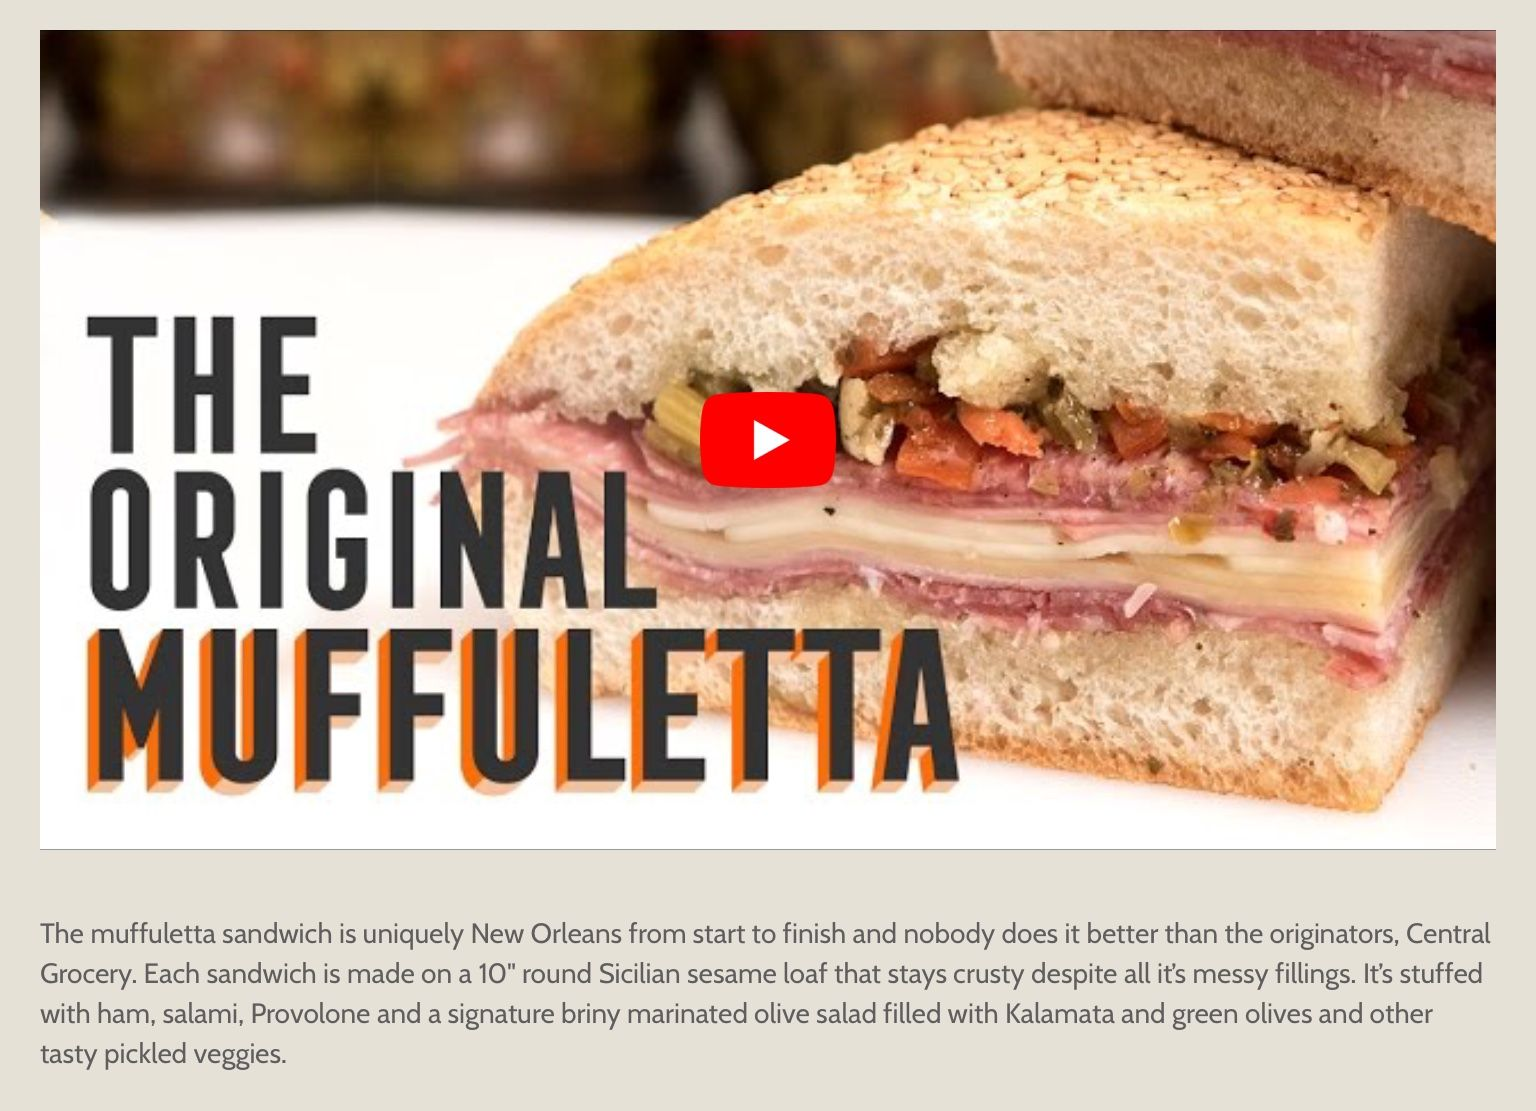 Central Grocery's Original Muffaleta... reason to head to